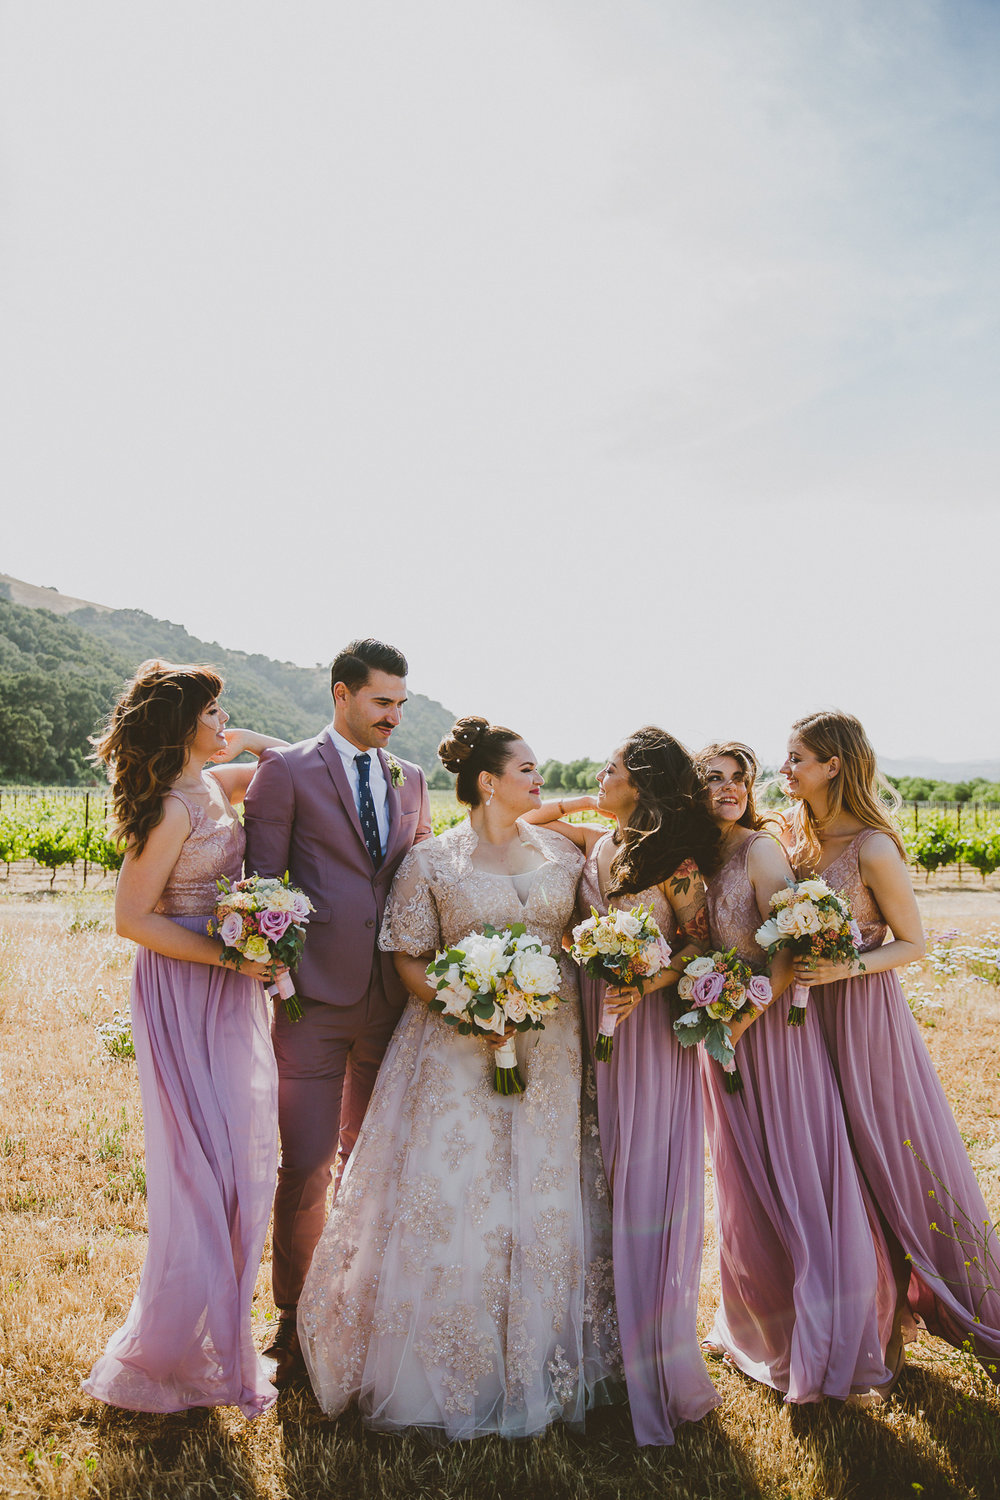 lydia-matt-lavender-oak-vineyard-kelley-raye-los-angeles-wedding-photographer-24.jpg